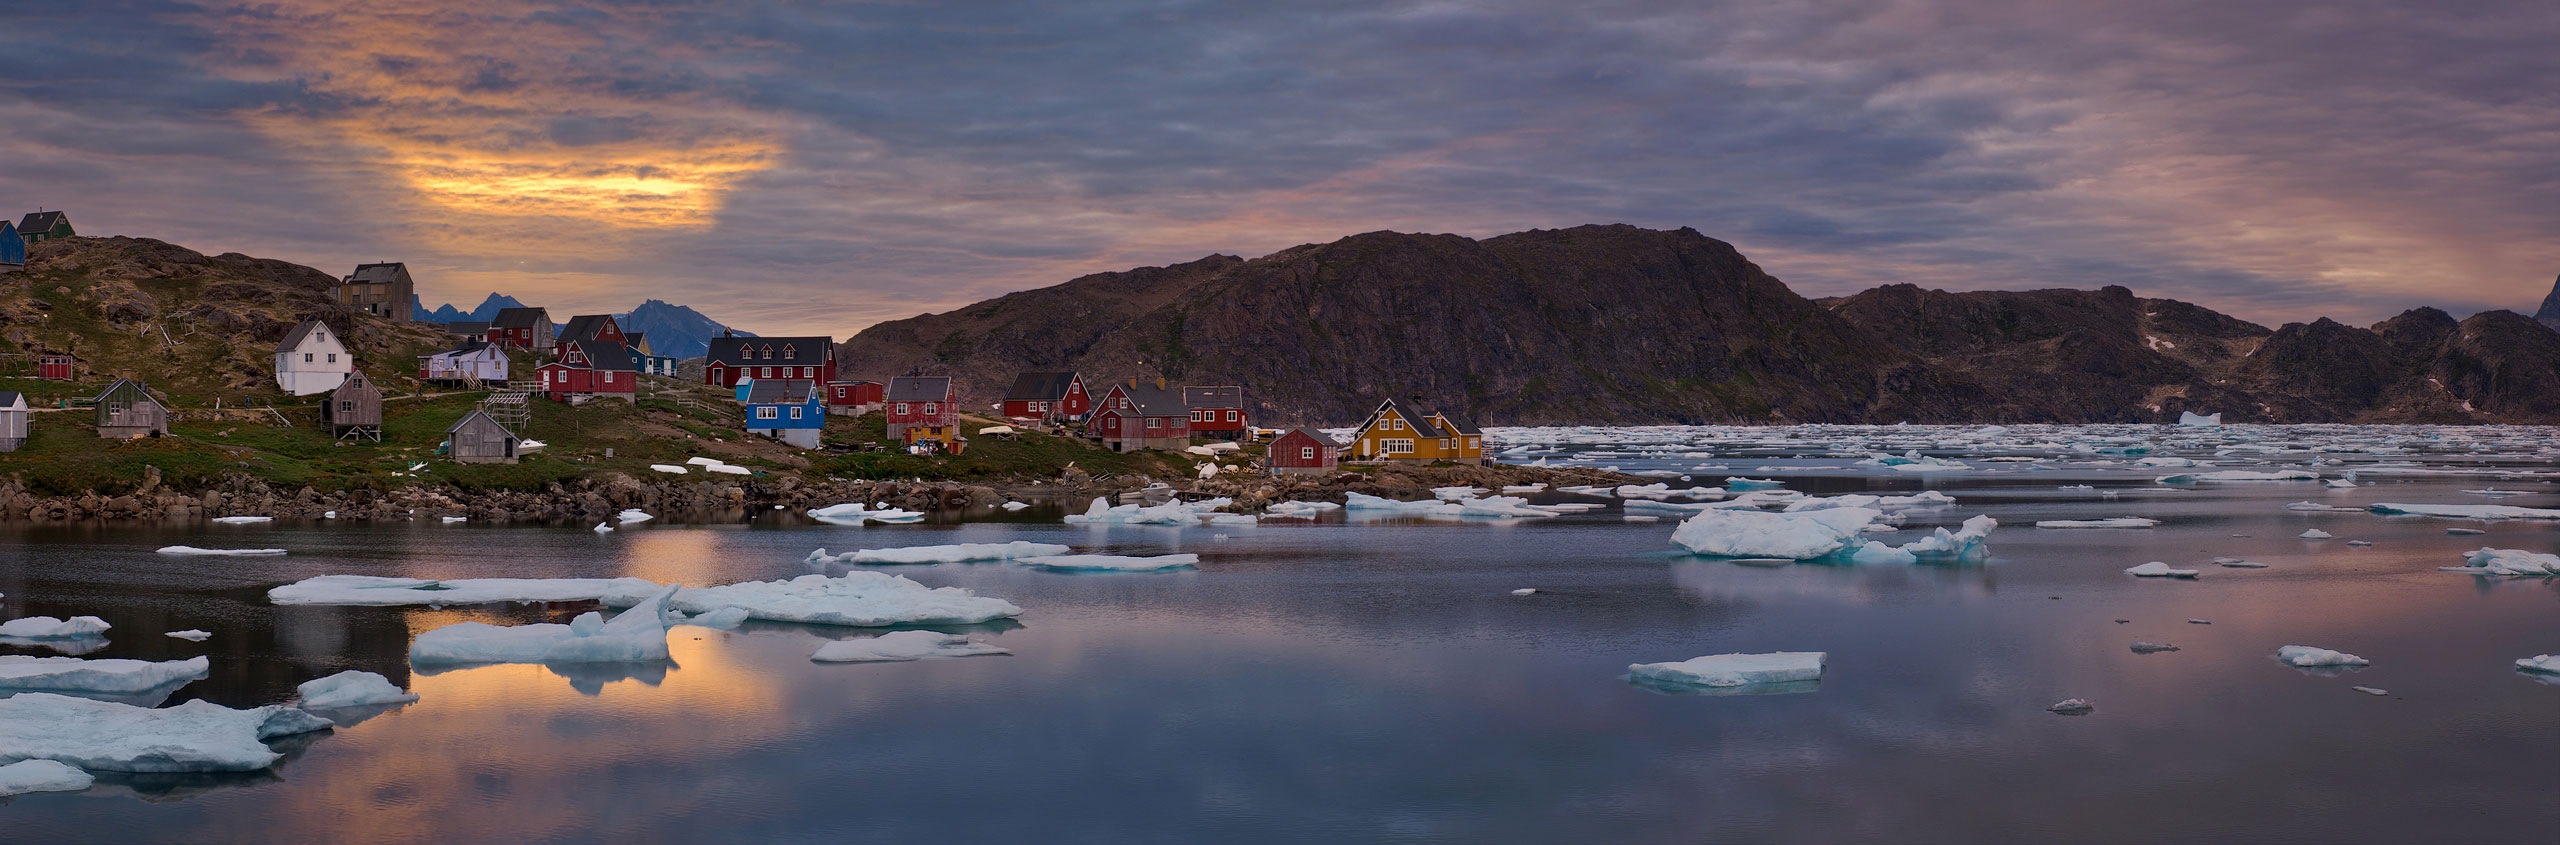 Sunset over settlement of Kulusuk and Torsuut Tunoq sound. Southeastern Greenland. Panoramic. - Greenland-Iceberg-Factory-1 - Mike Reyfman Photography